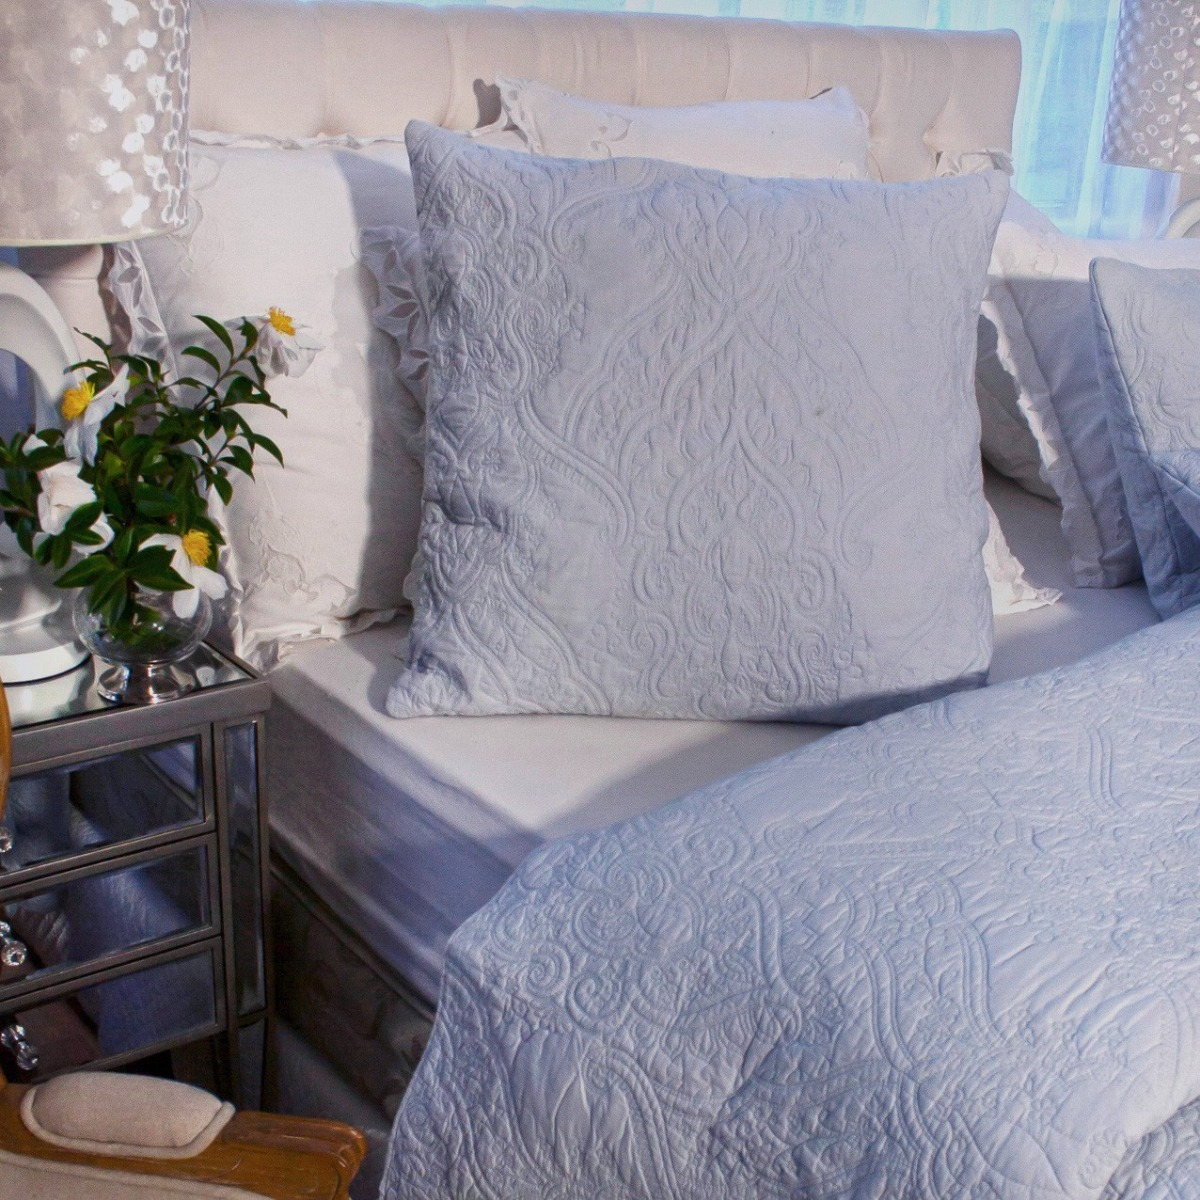 Angads-Dmask-100-Cotton-Quilted-Bedspread-Set-With-Two-Pillowcases-in-Blue